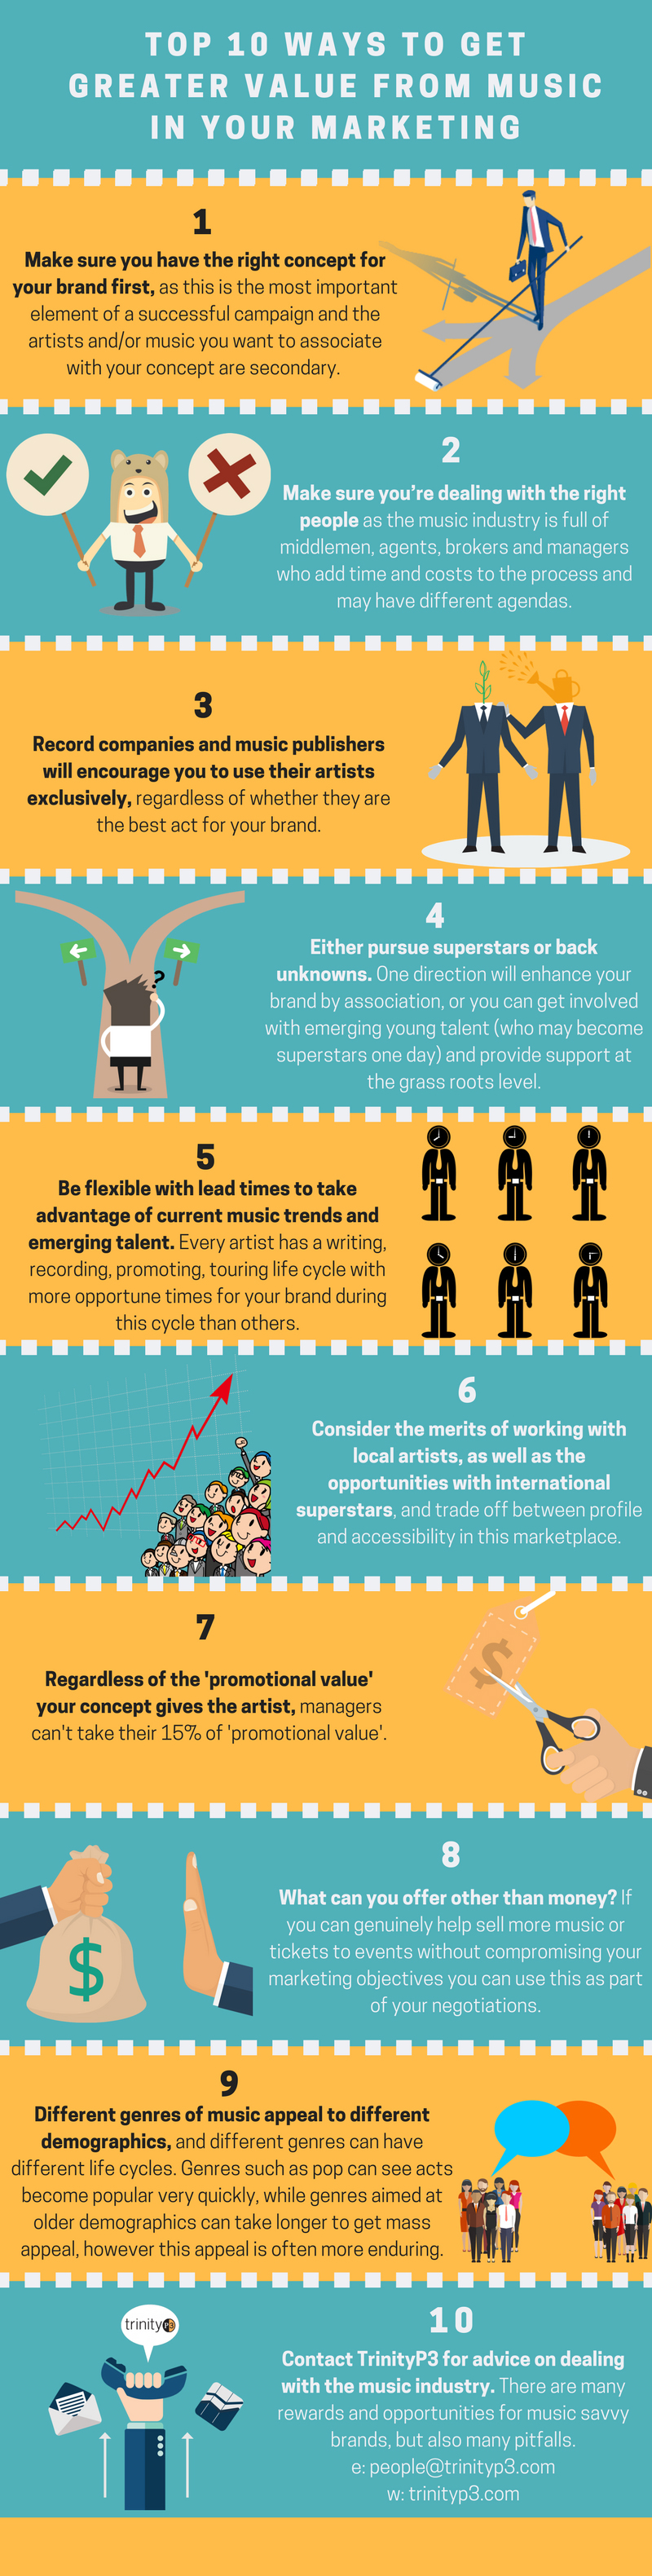 Top 10 Ways To Get Greater Value From Music in Your Marketing #infographic #Marketing #Music #Music Industry